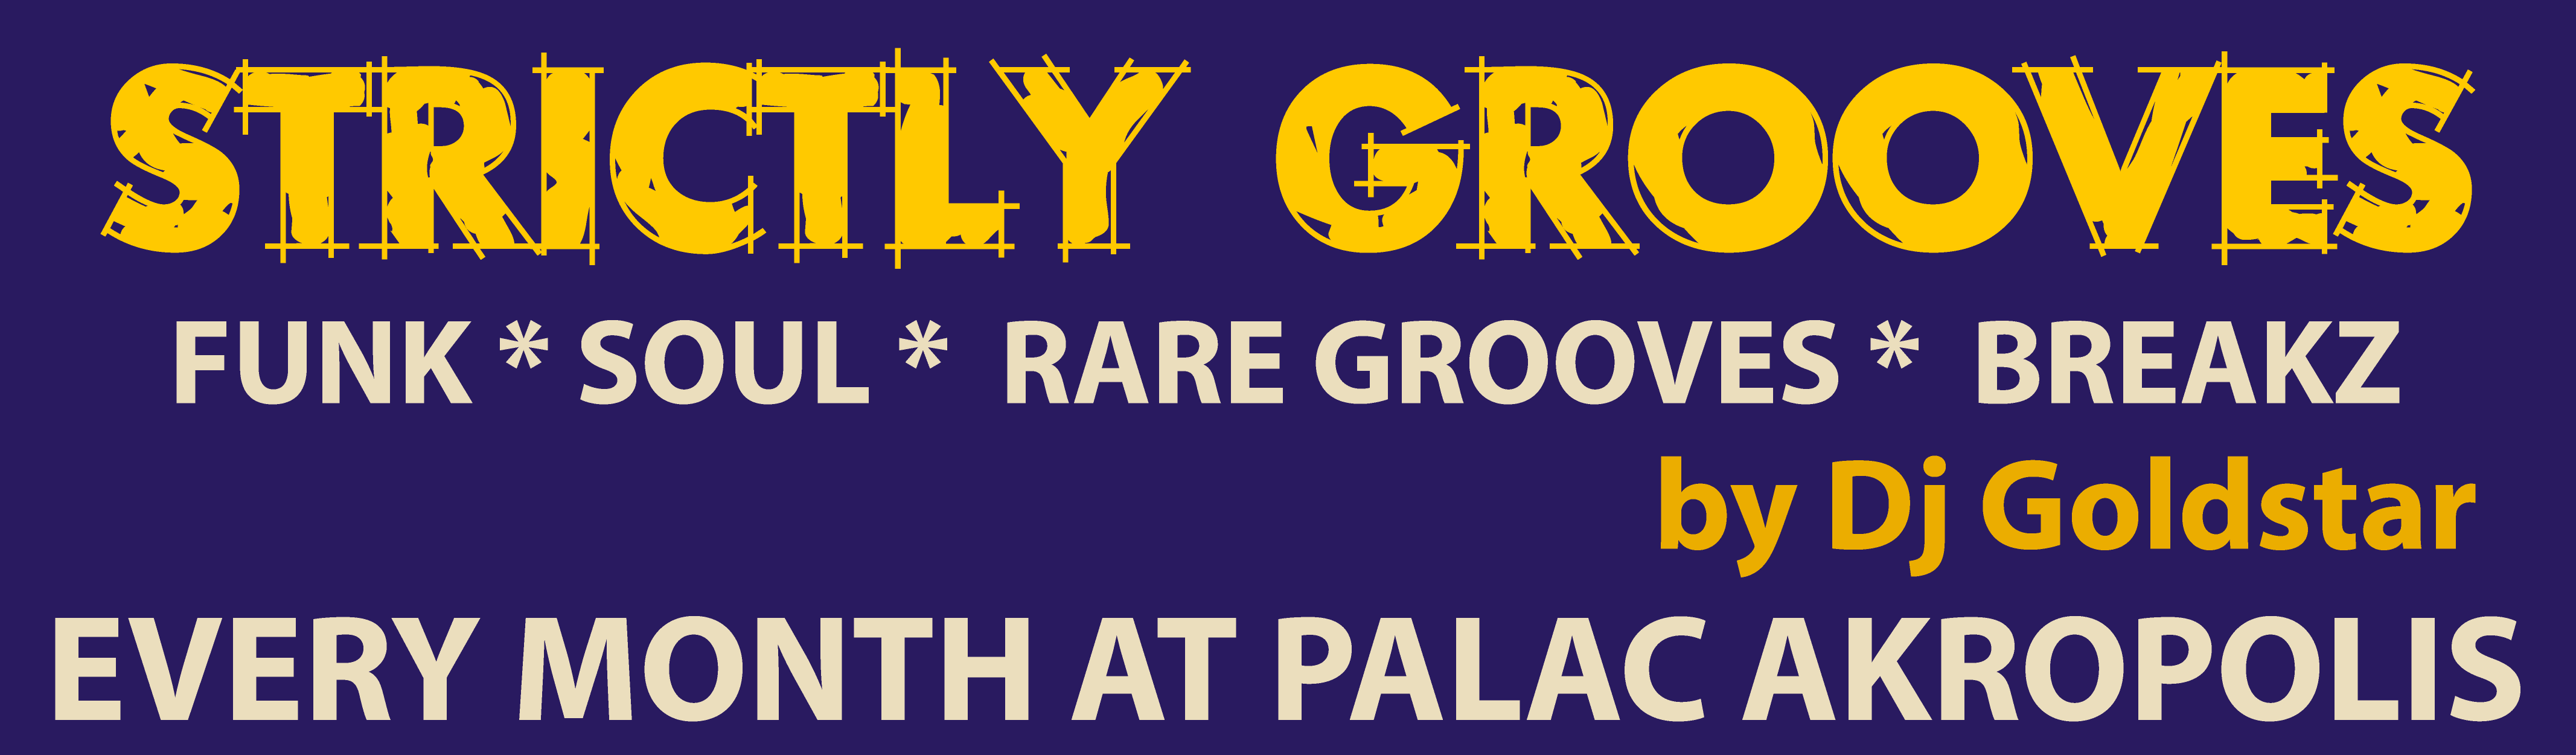 strictly-grooves-banner.png